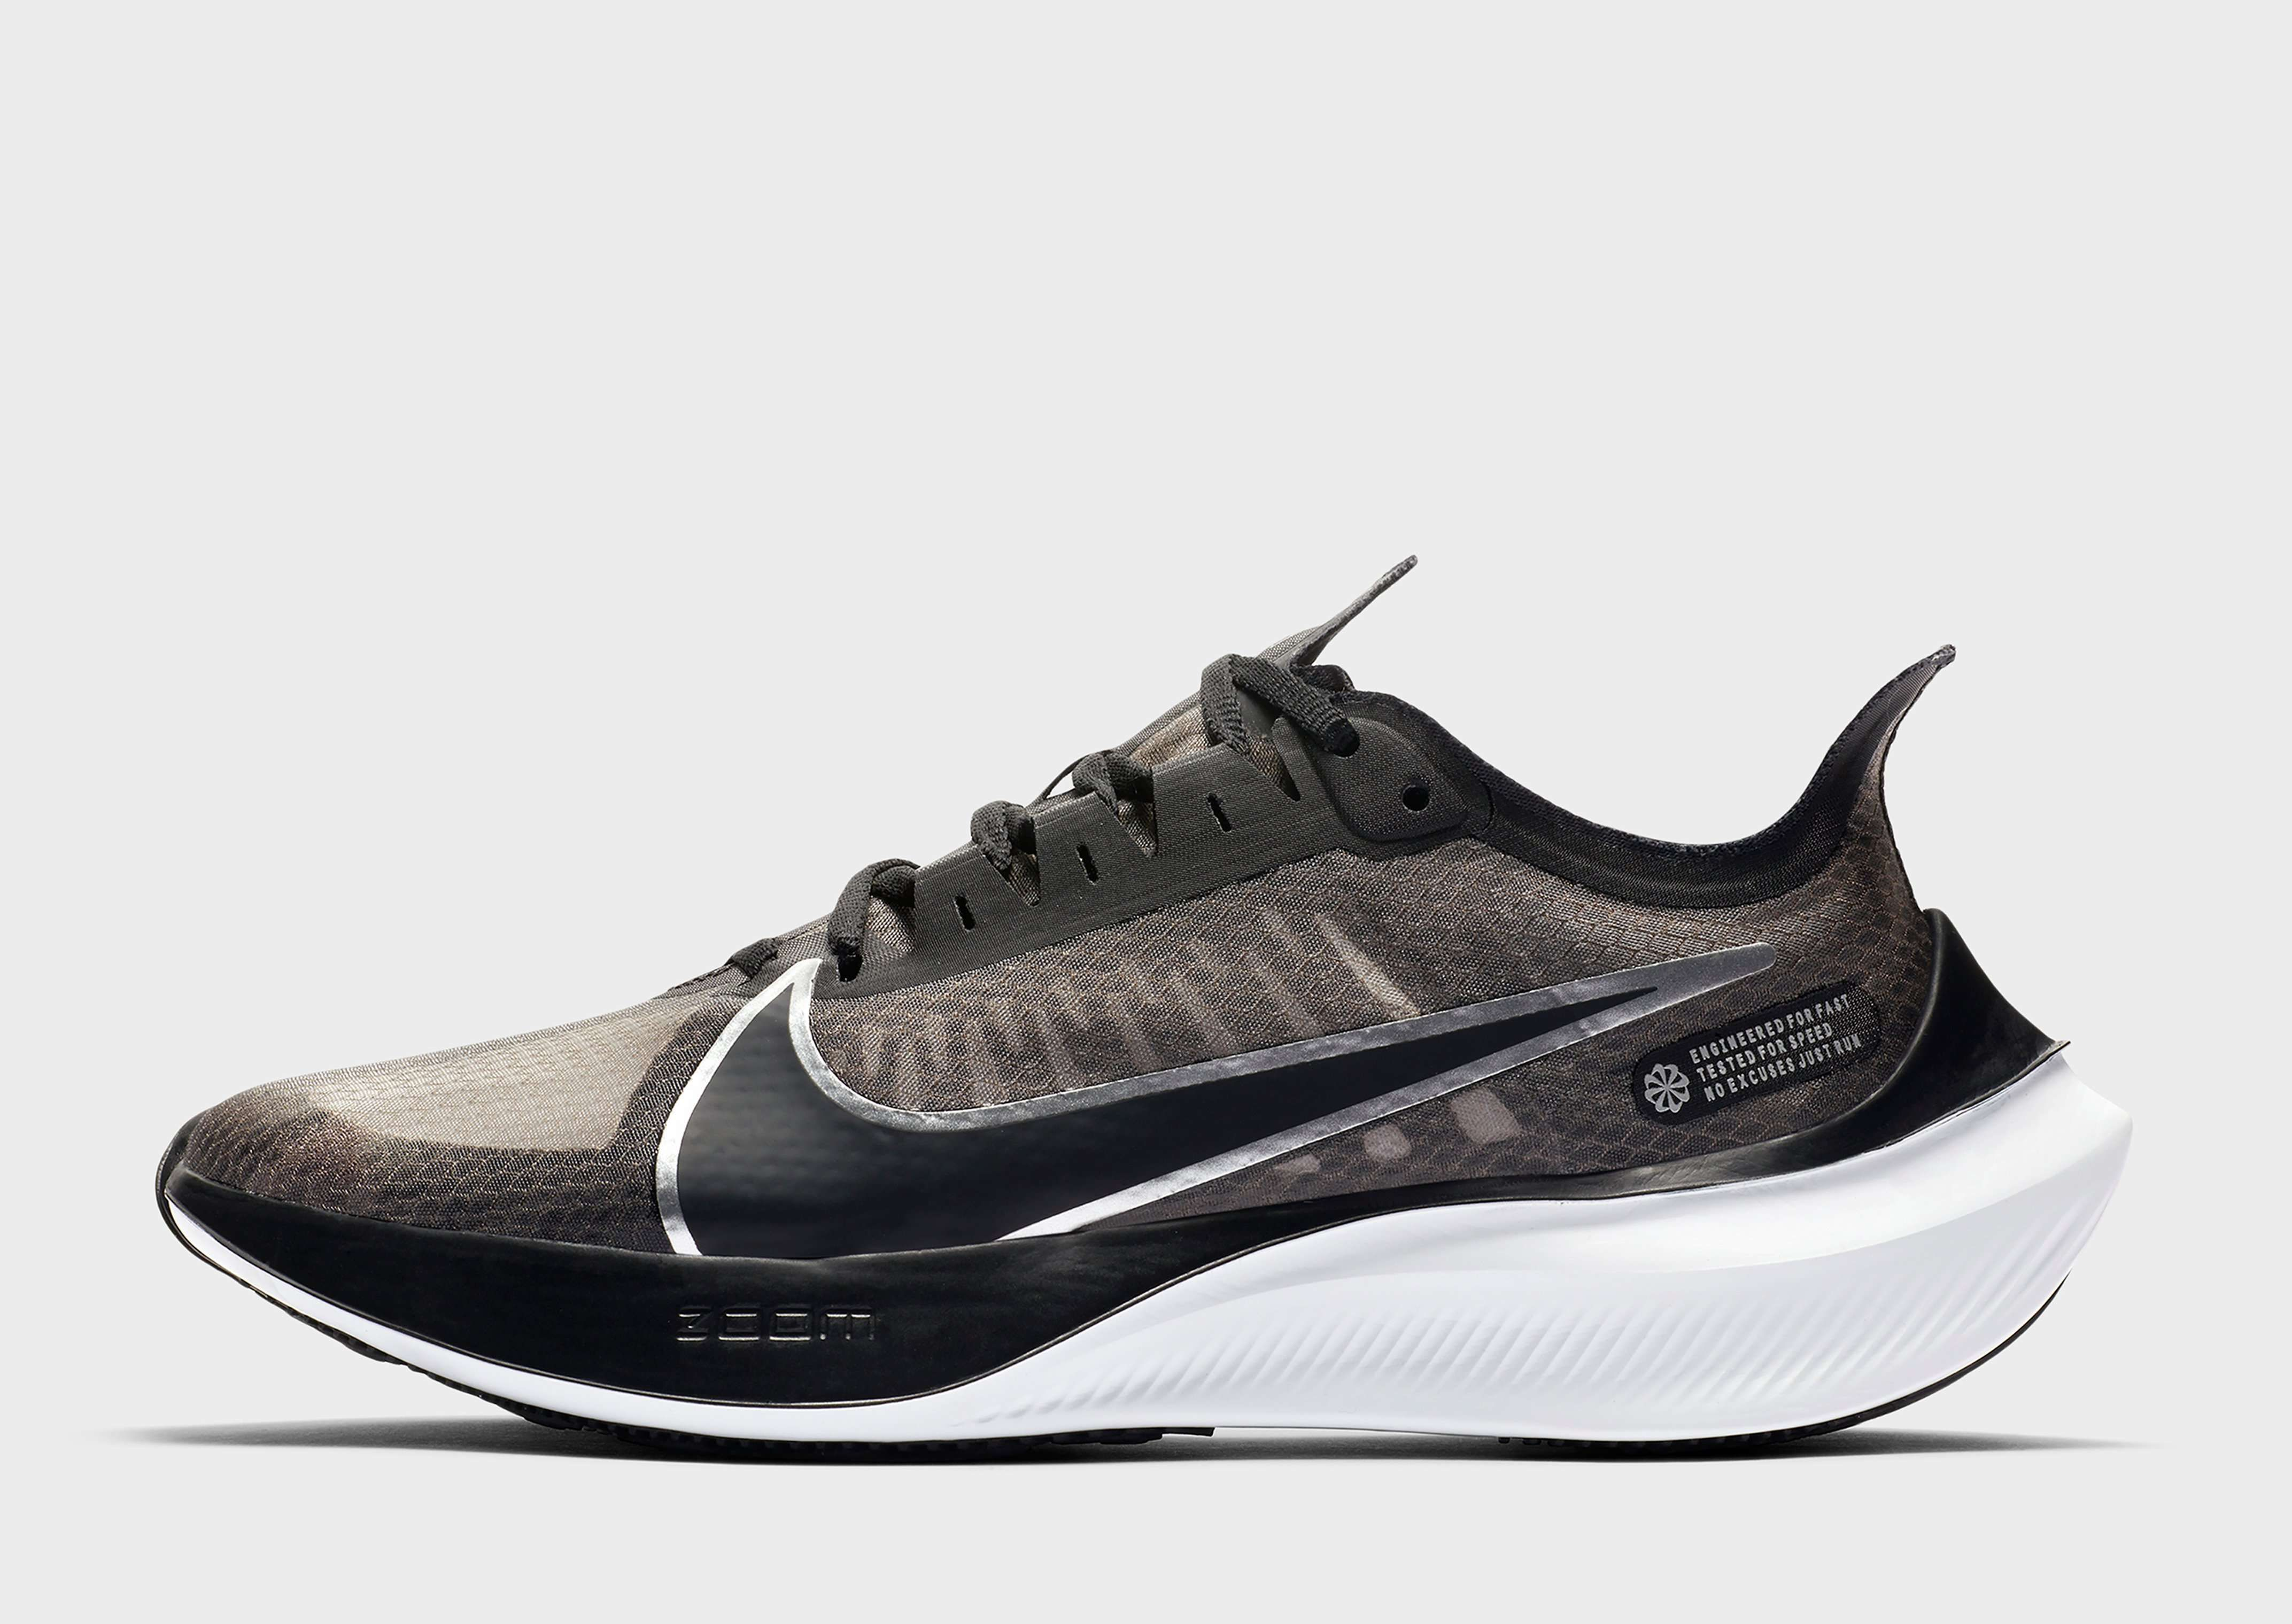 Larva del moscardón bufanda Nominal  Nike Nike Zoom Gravity Women's Running Shoe | JD Sports | Womens running  shoes, Running women, Nike zoom